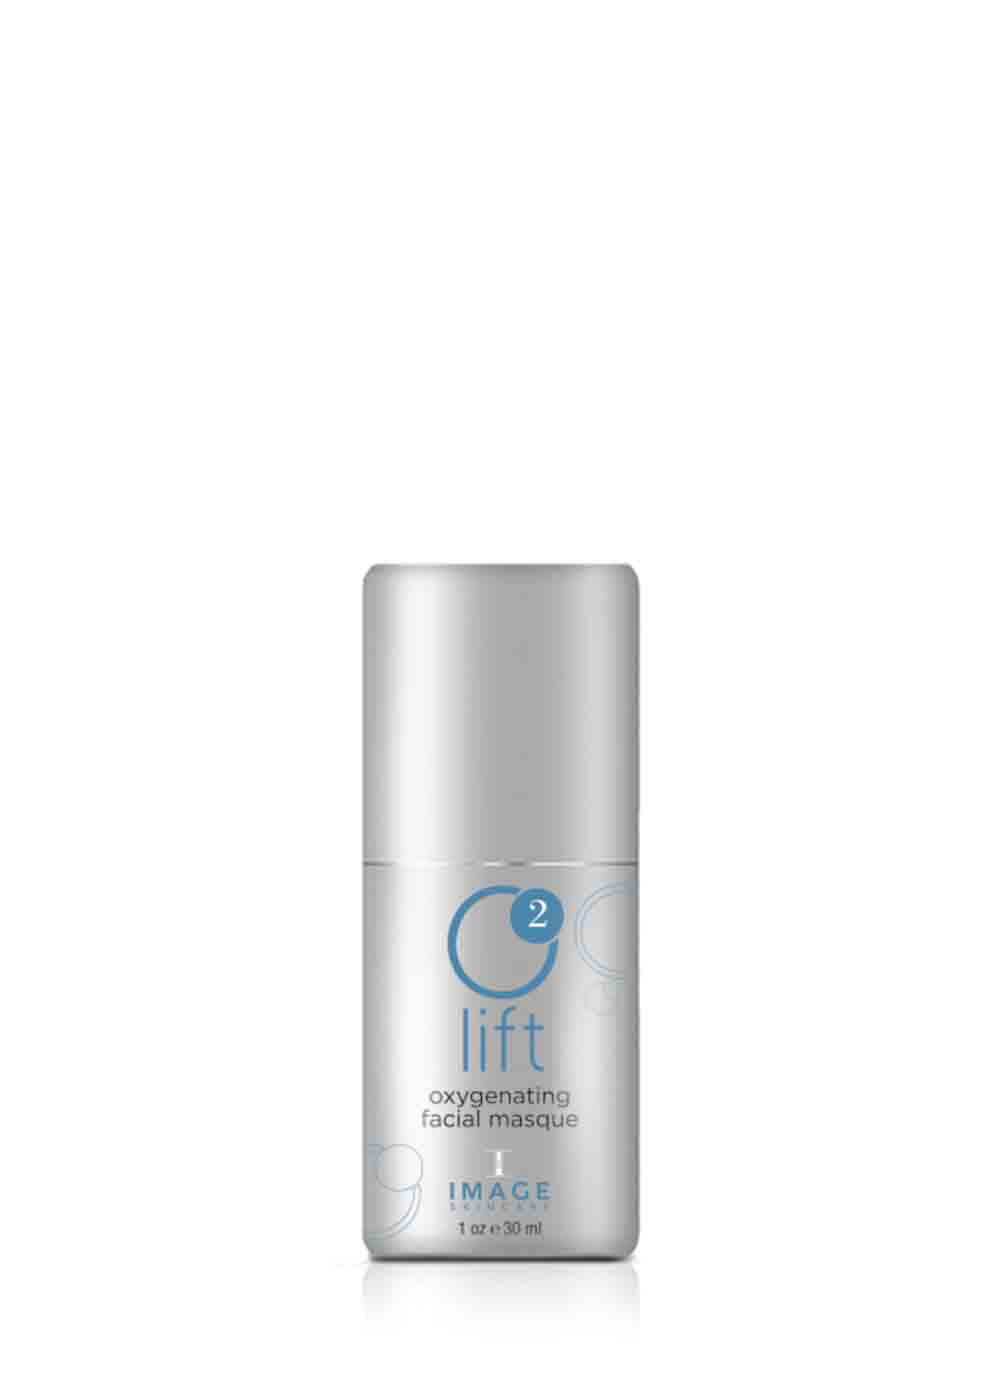 O2 LIFT    oxygenating facial masque masque facial